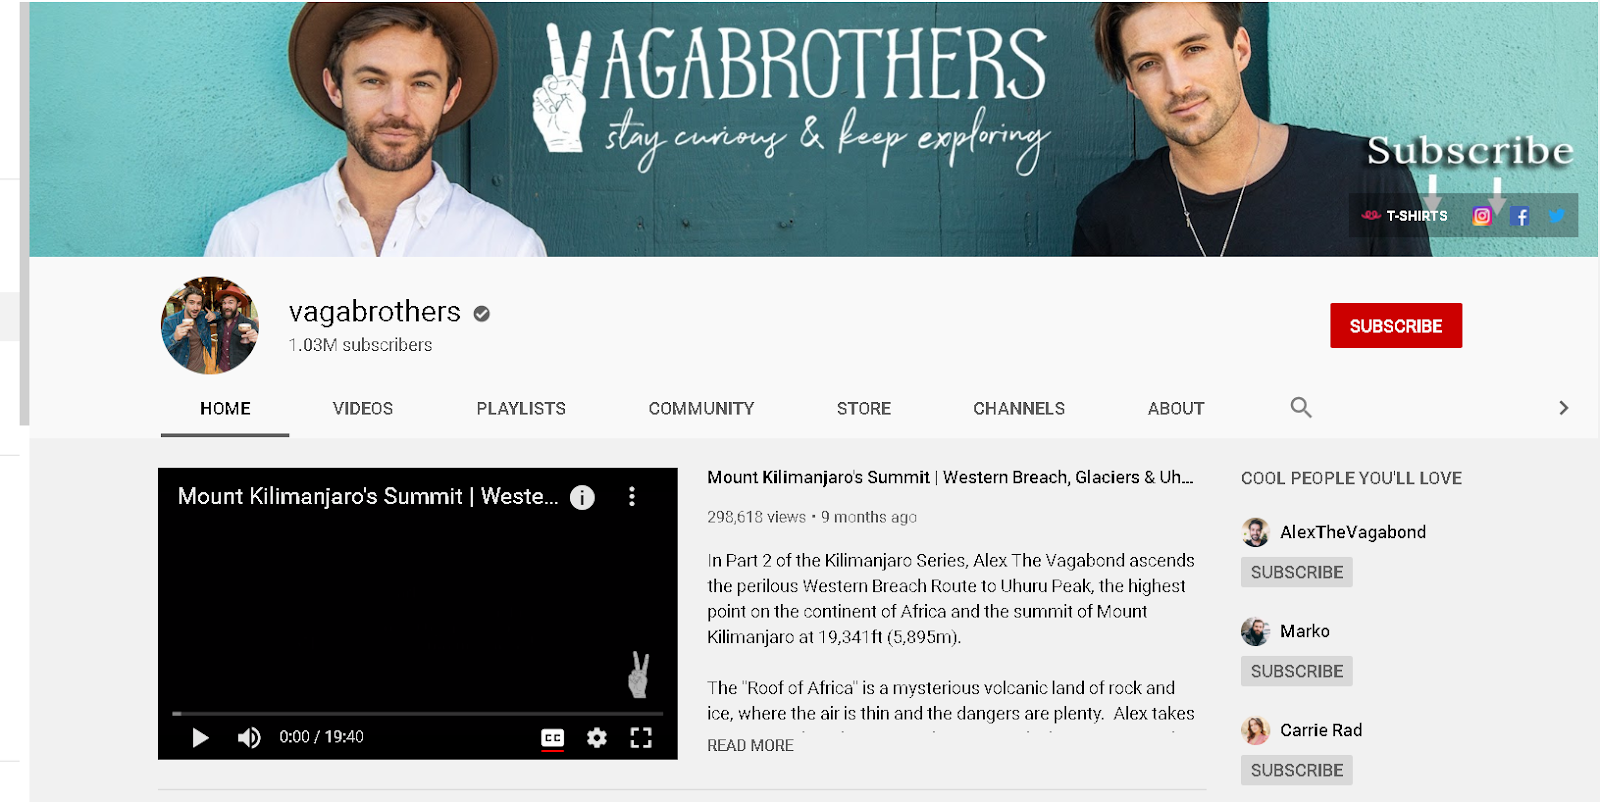 Vaga Brothers YouTube channels